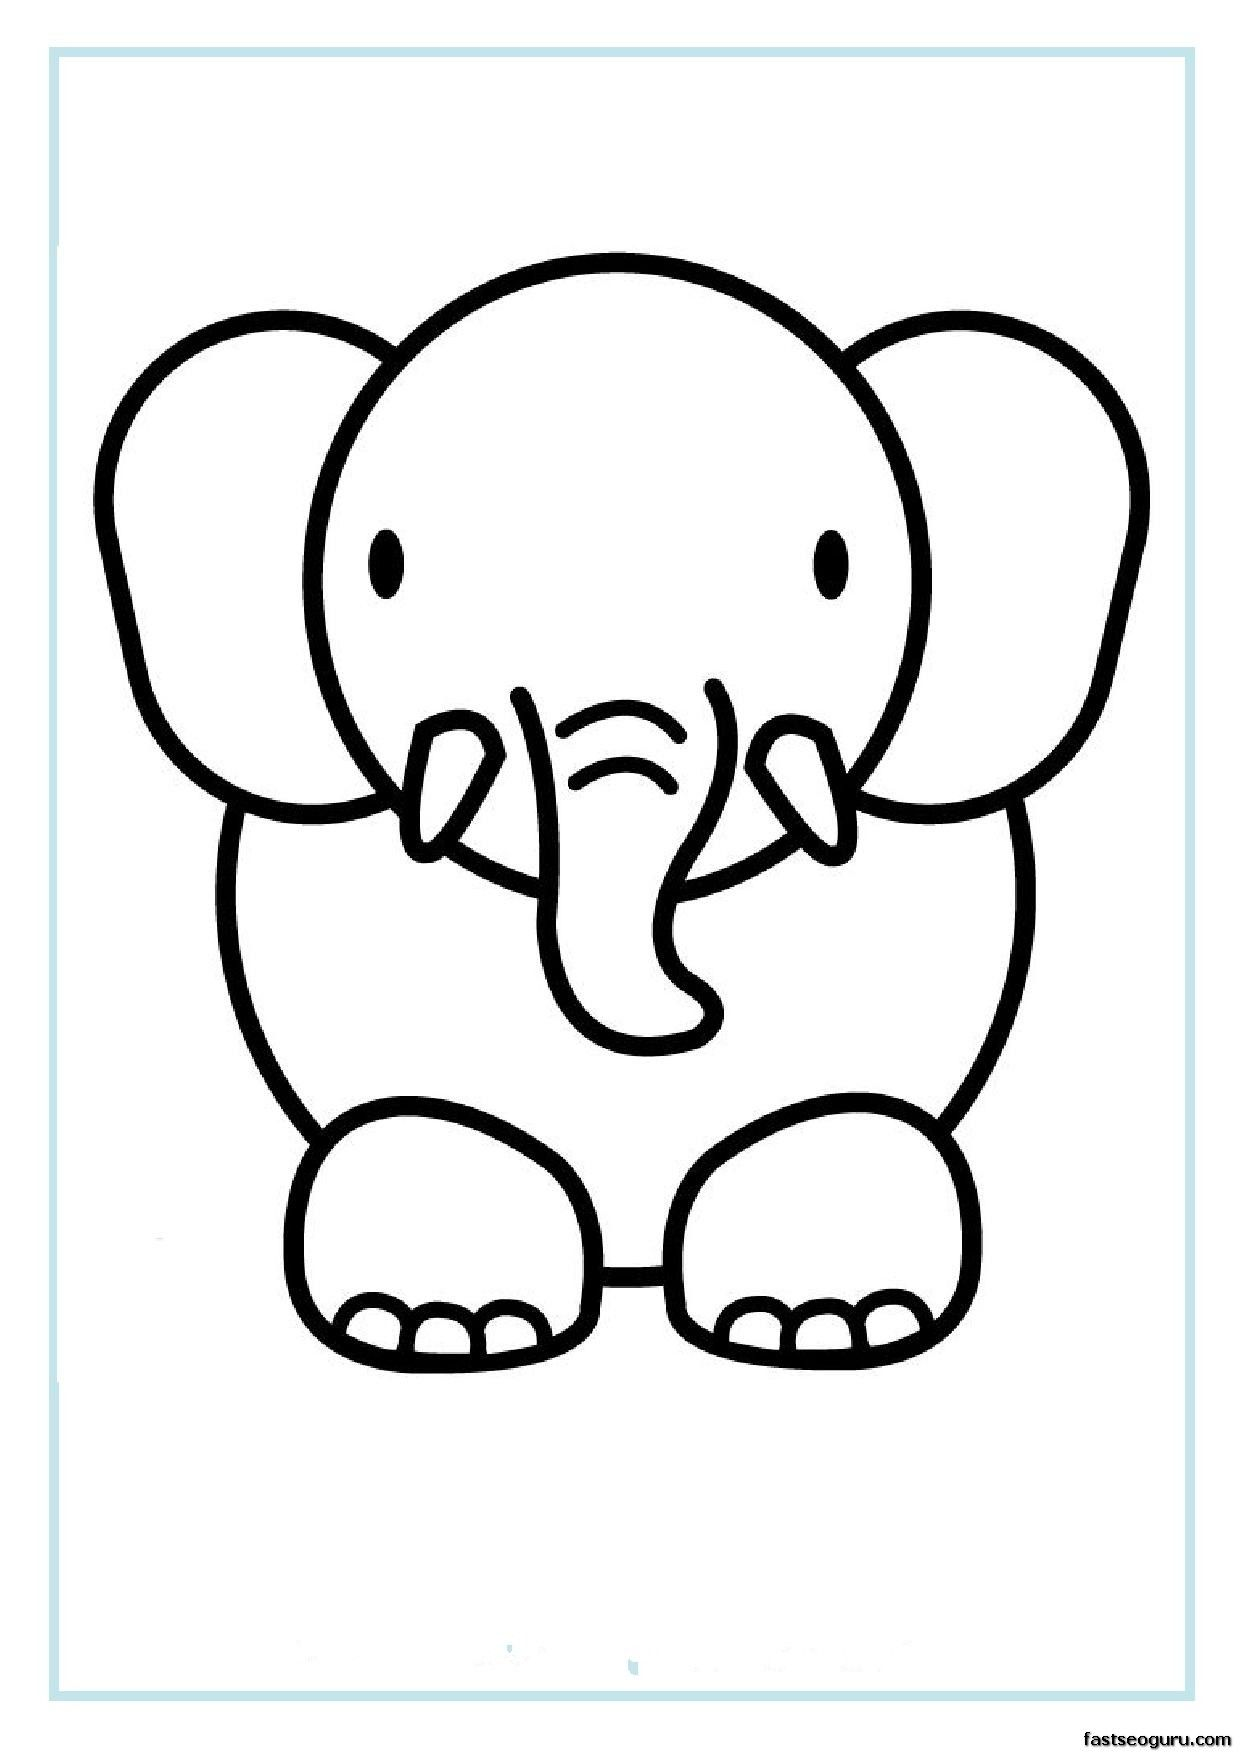 Printable Coloring Pages Animals #3 | Coloring Pages | Pinterest ...